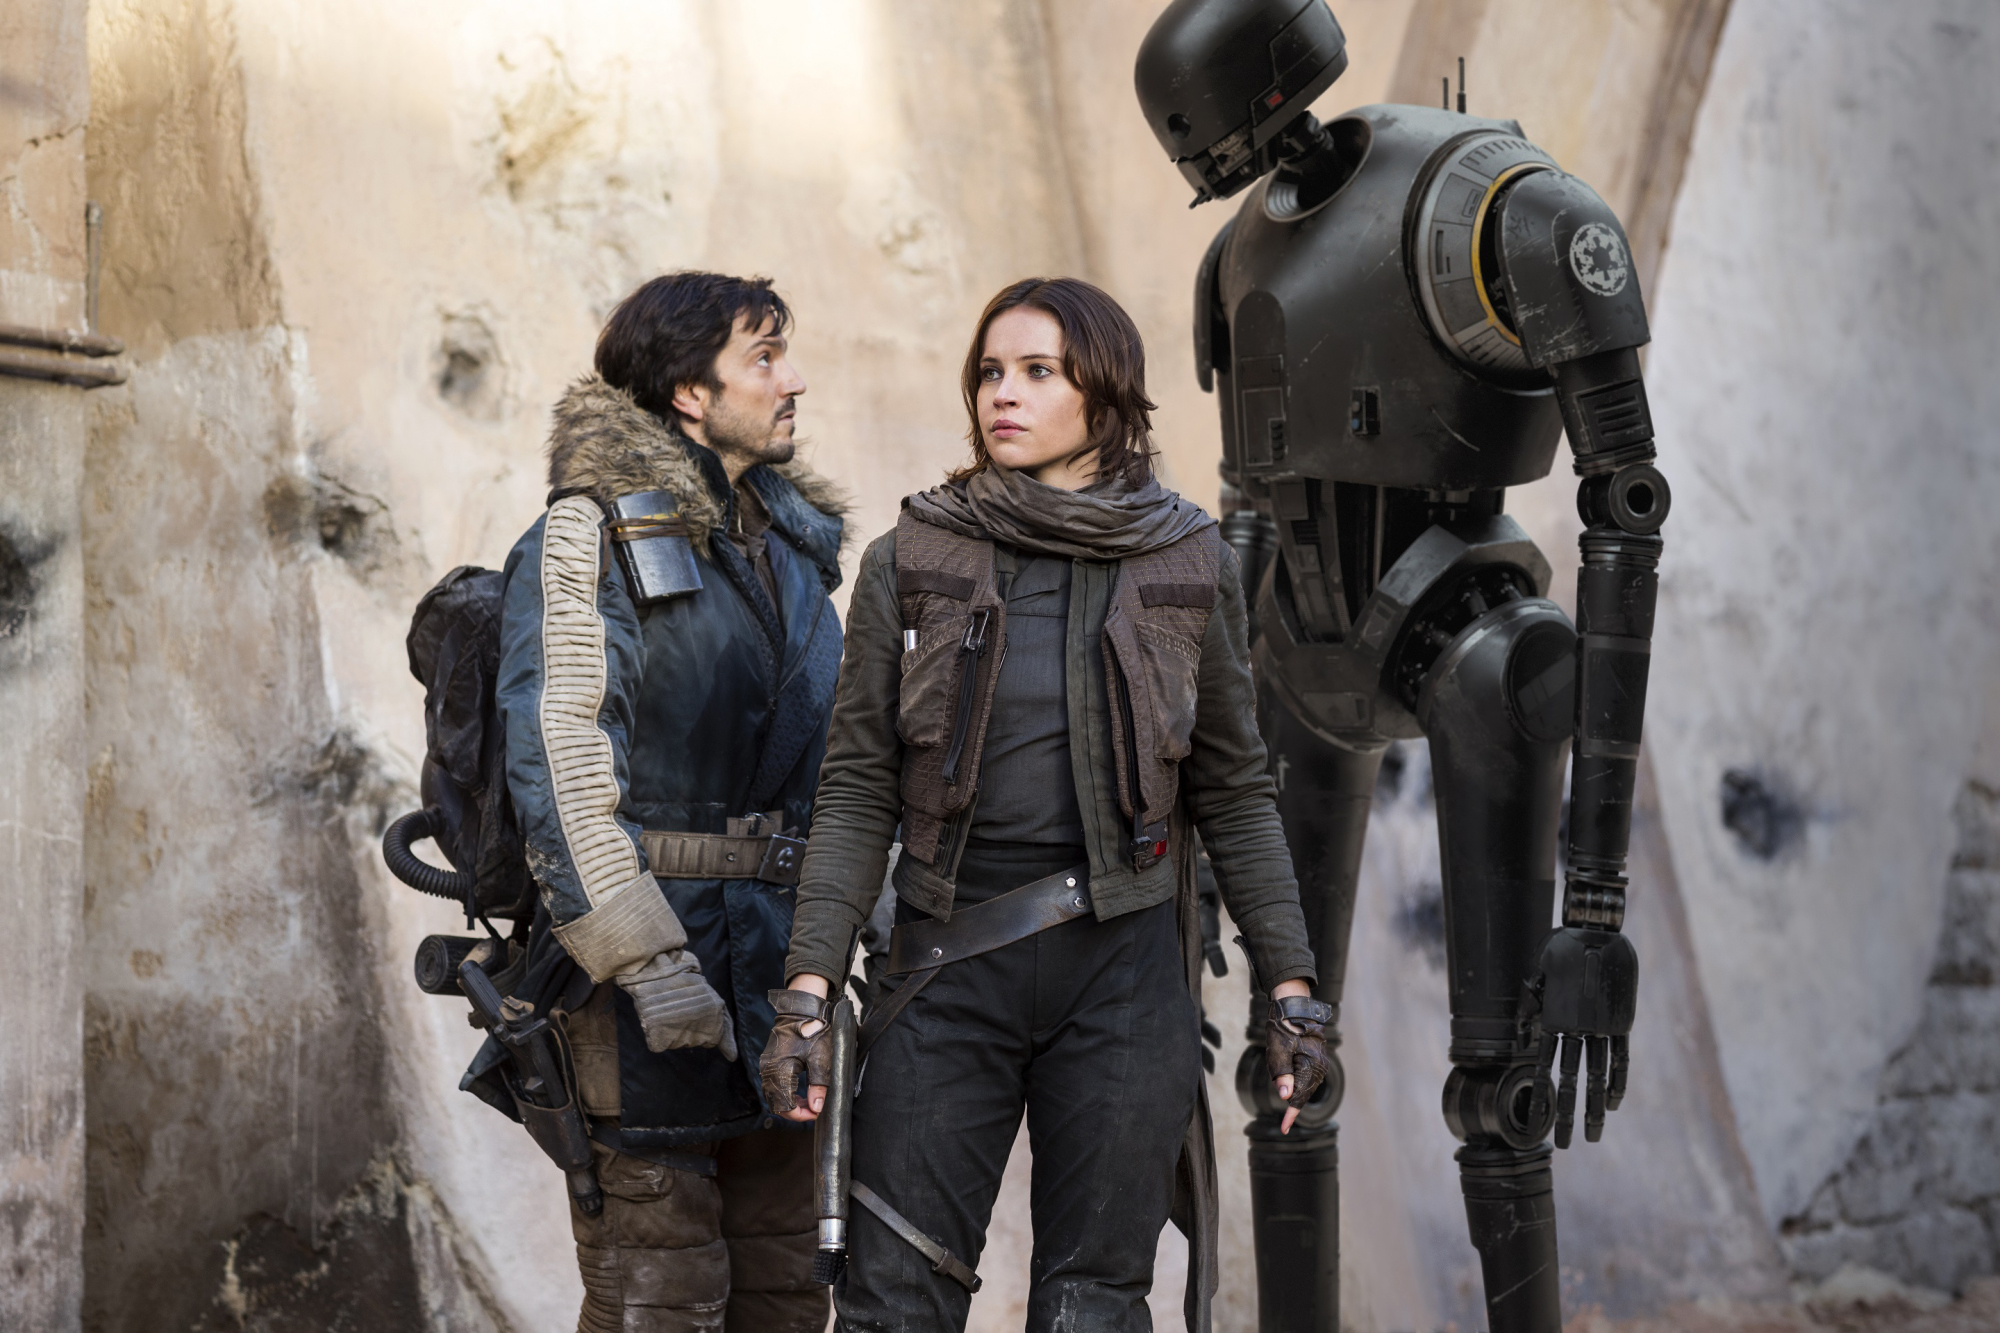 The Hilarious Backstory of Why K-2SO Slapped Diego Luna in 'Rogue One: A Star Wars Story'